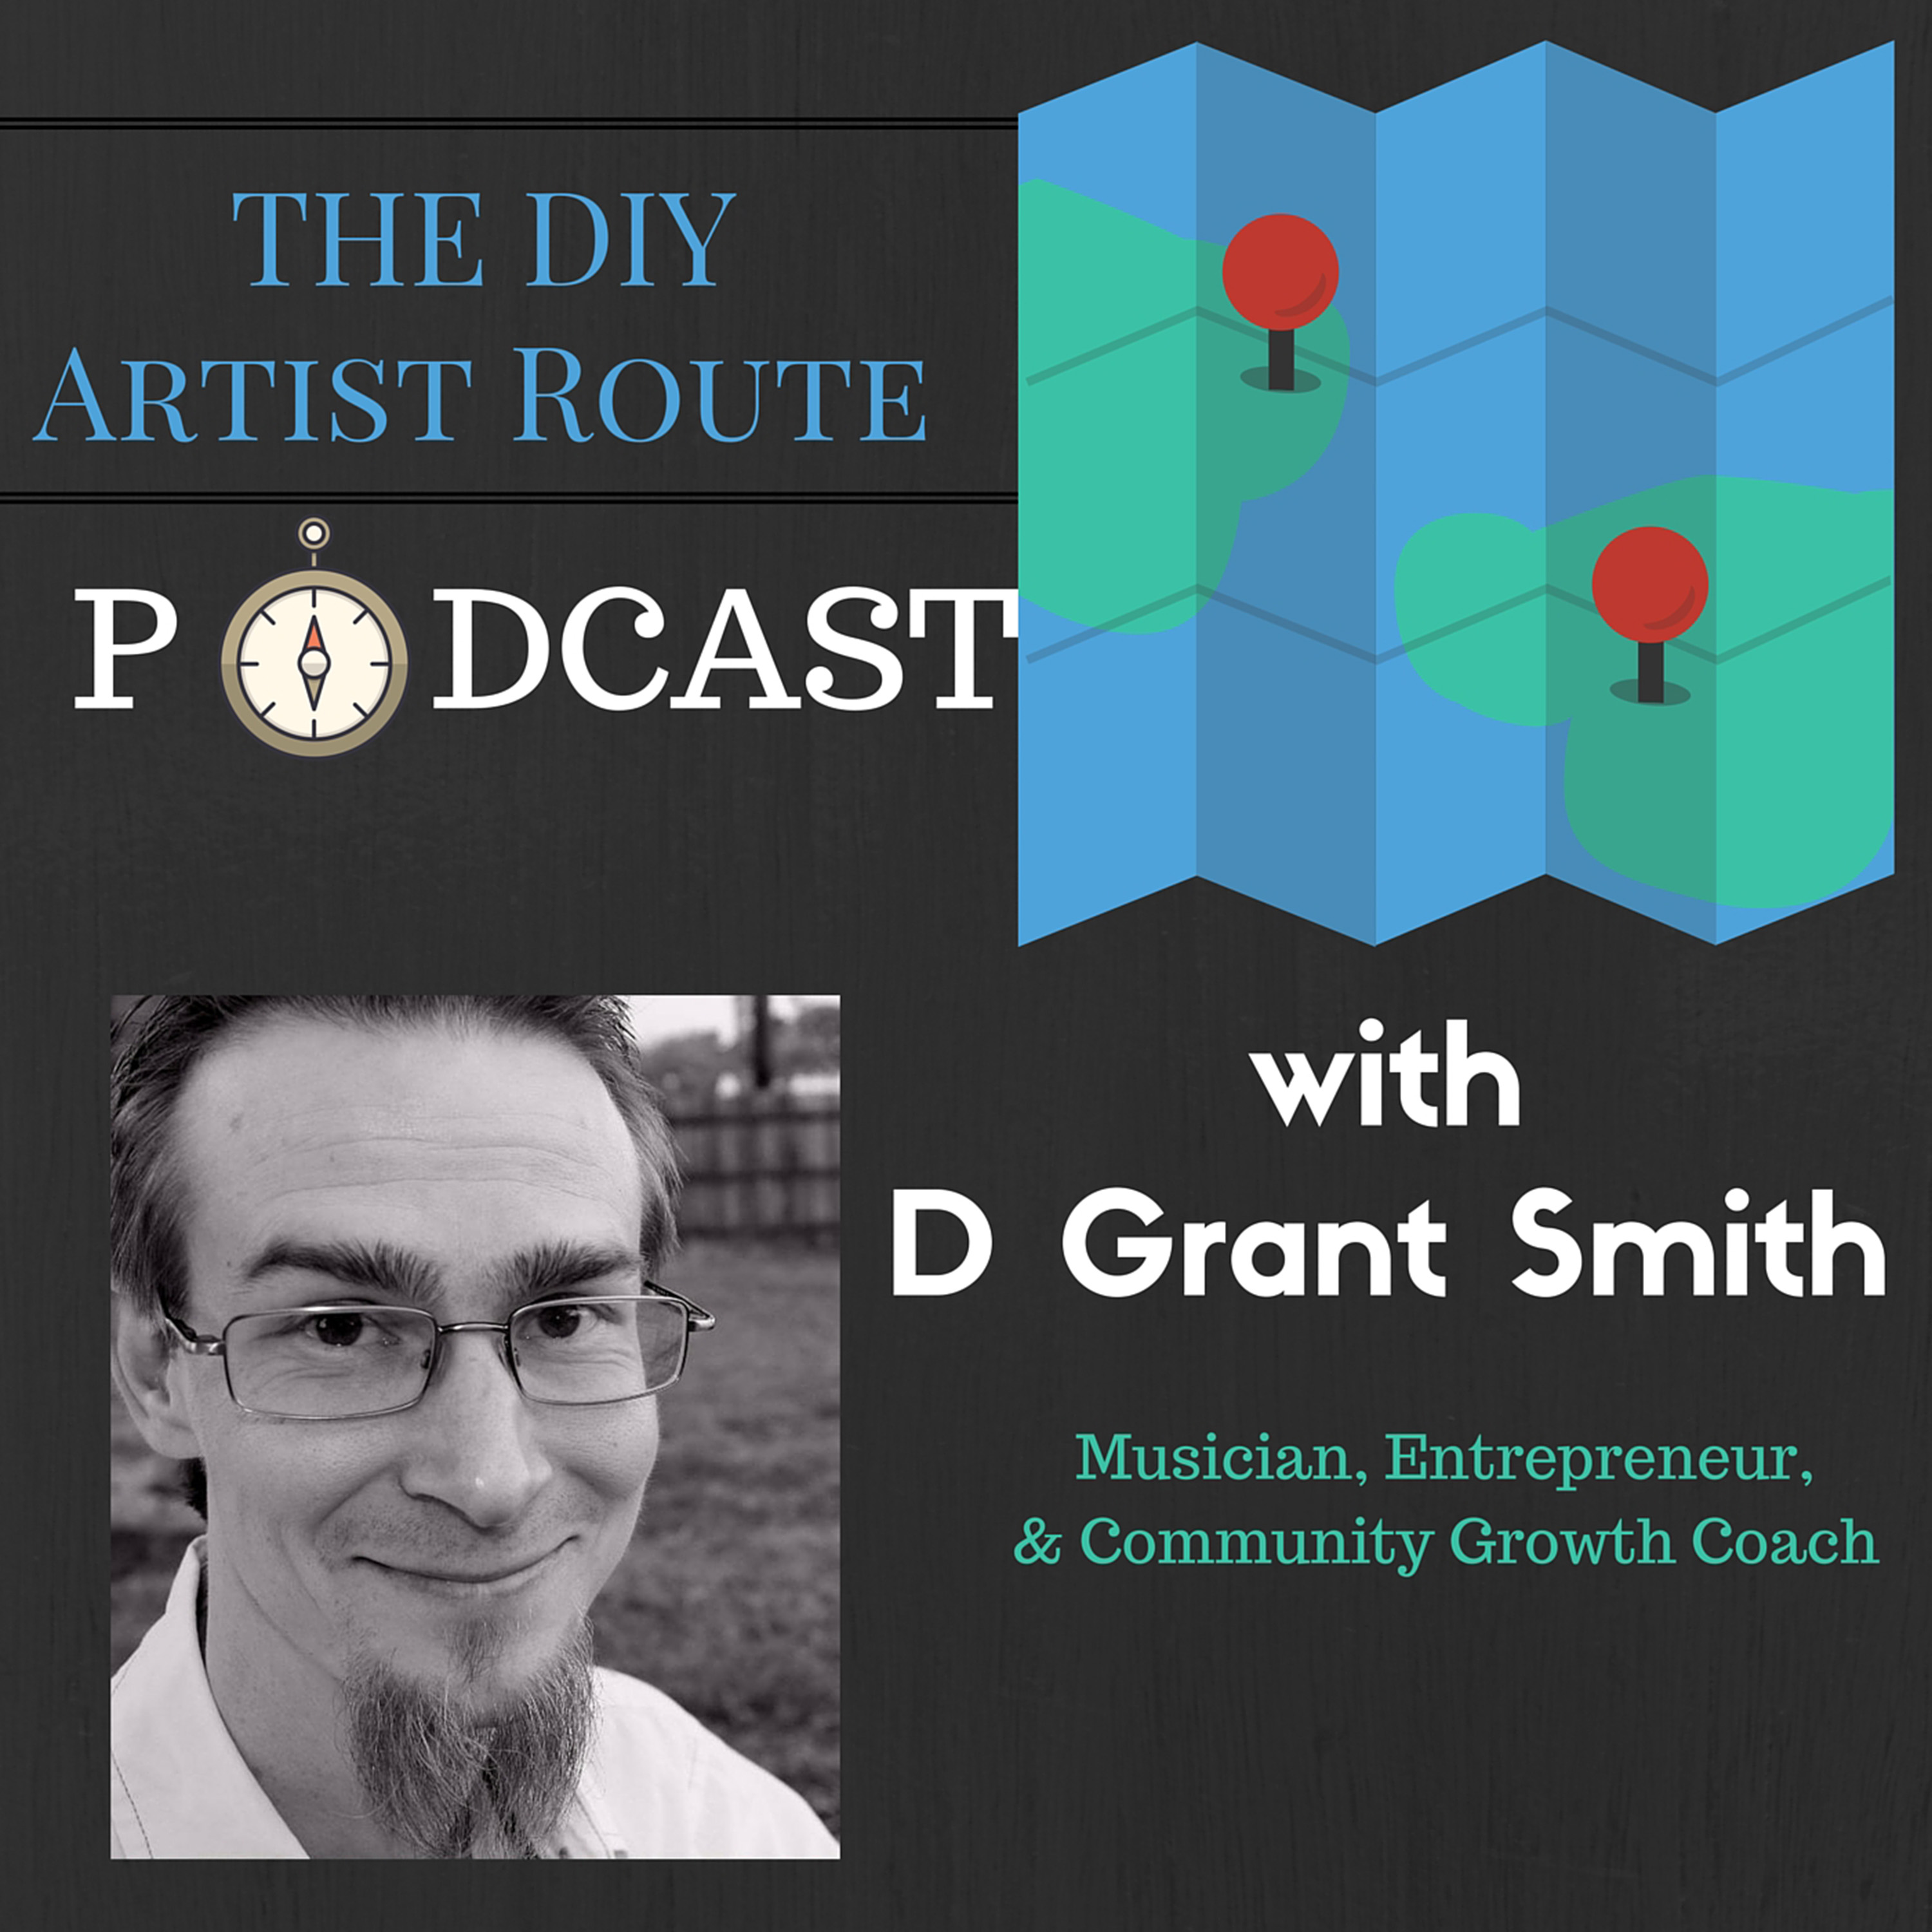 The DIY Artist Route Podcast